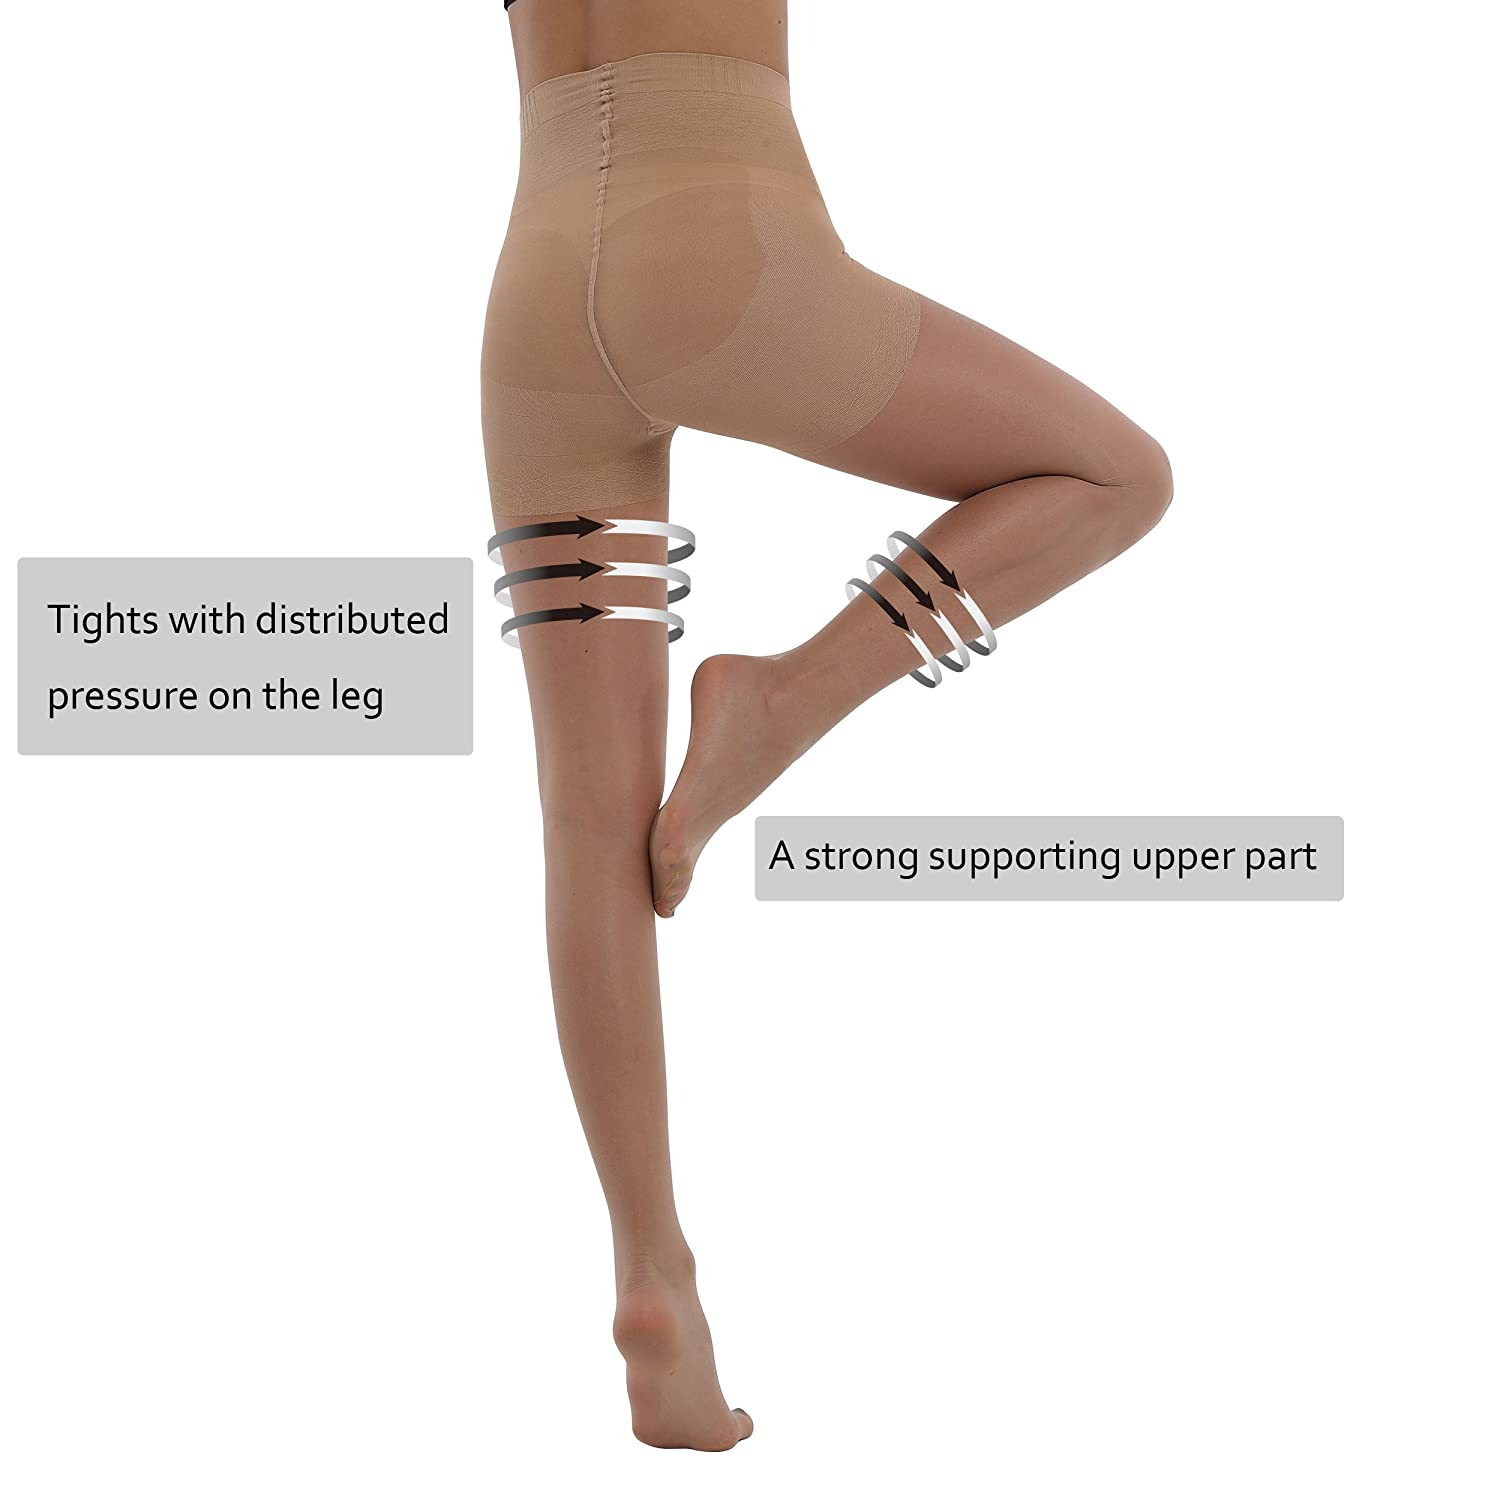 8832f080bf5 BONAS Bodyshaper Pantyhose 3Pack High Waisted Shock Up Silky Stockings  Control Top Tights at Amazon Women s Clothing store